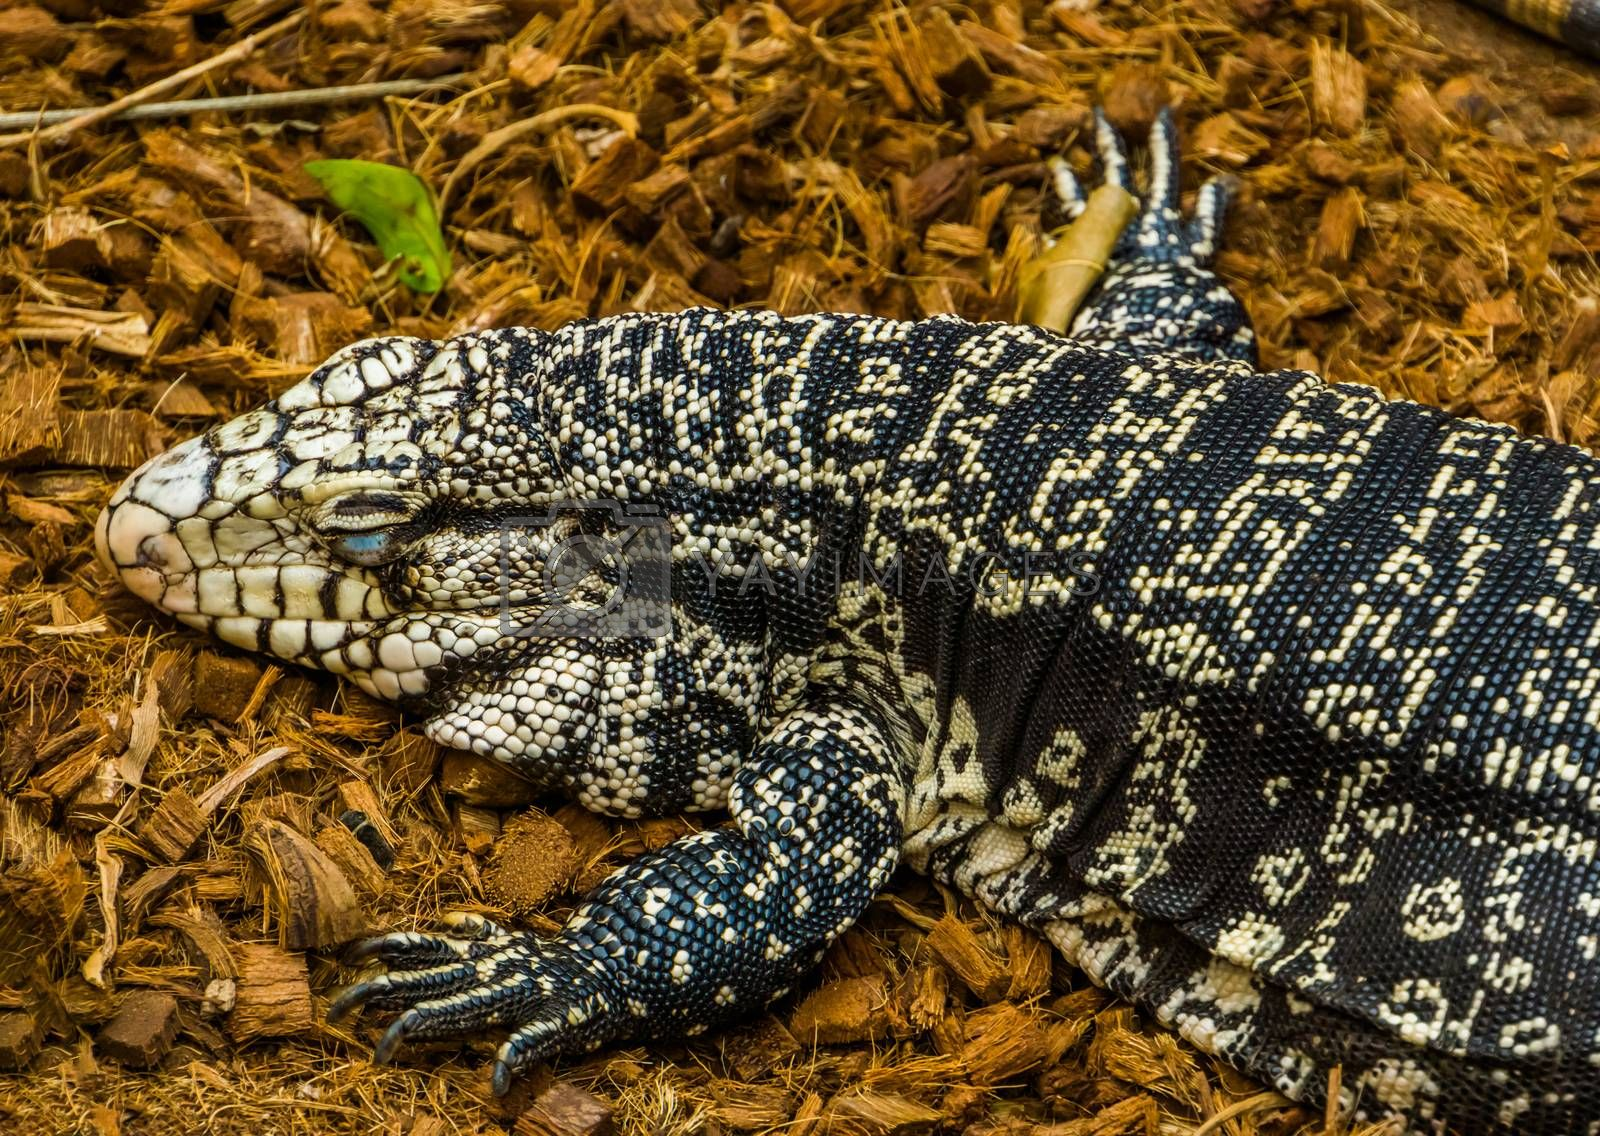 Argentine giant tegu sleeping on the ground, big lizard from America, Reptile brumation, popular pet in herpetoculture by charlotte Bleijenberg